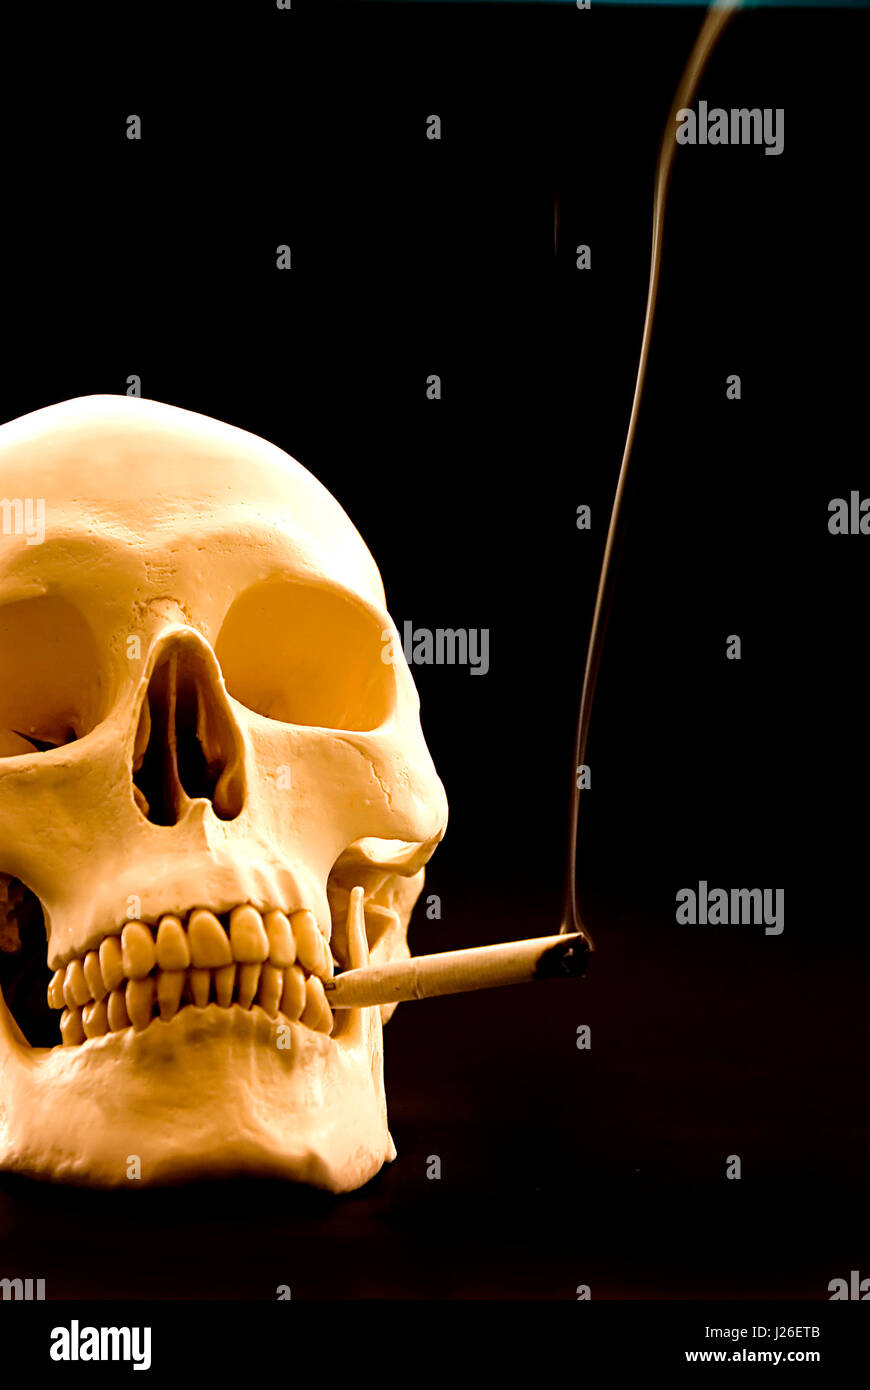 human skull with a smoking cigarette in the mouth - Stock Image